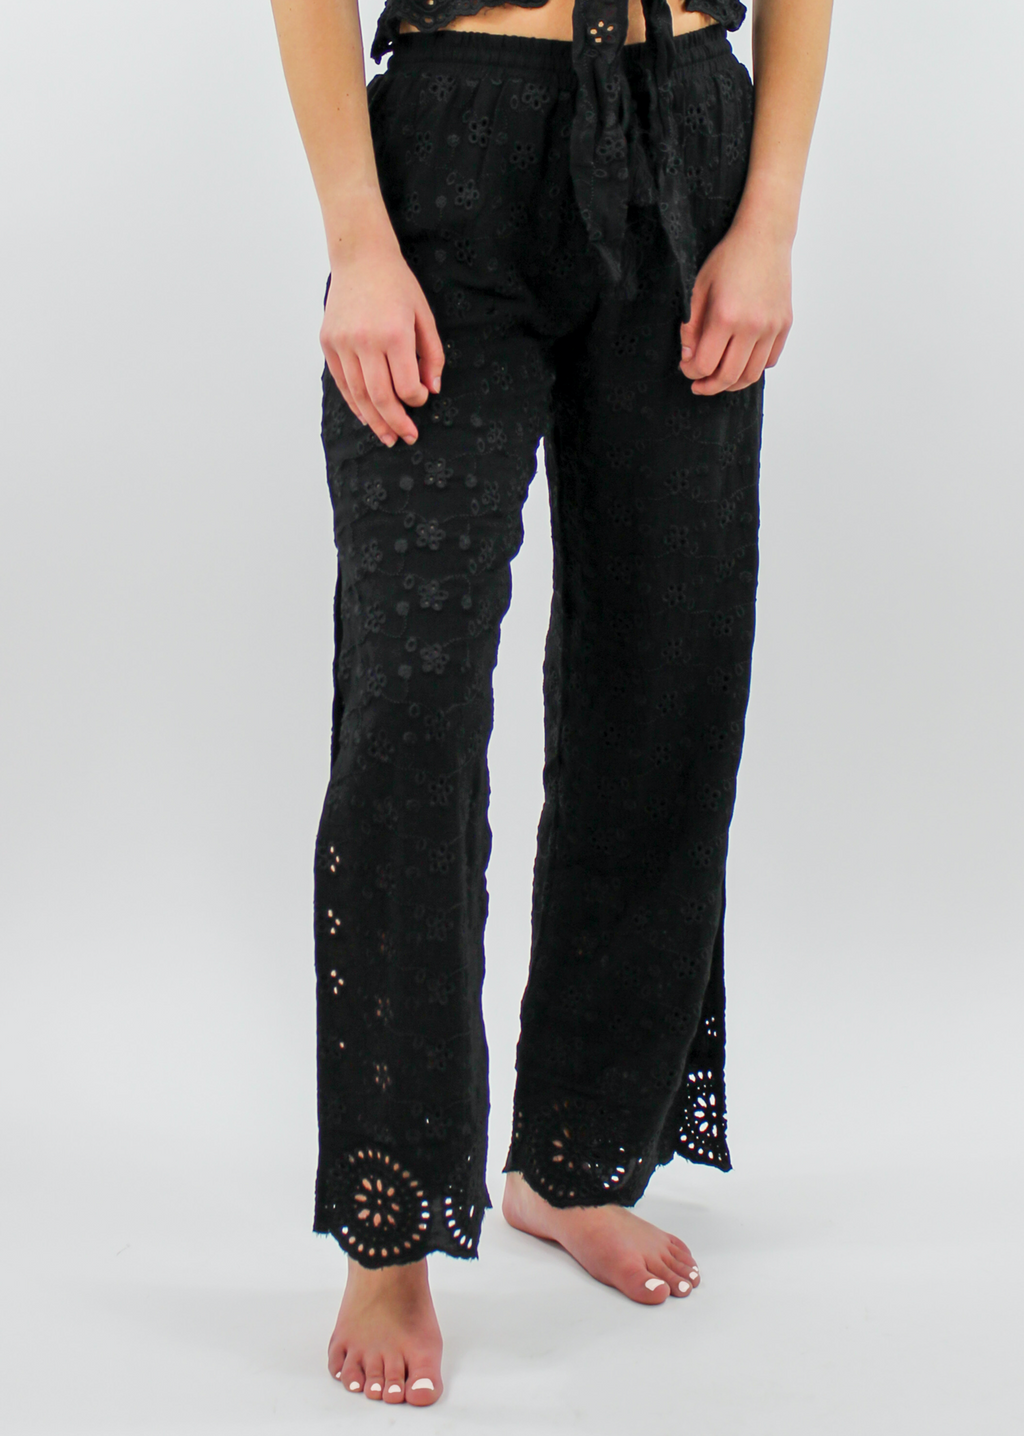 Free Bird Pants ★ Black - Rock N Rags